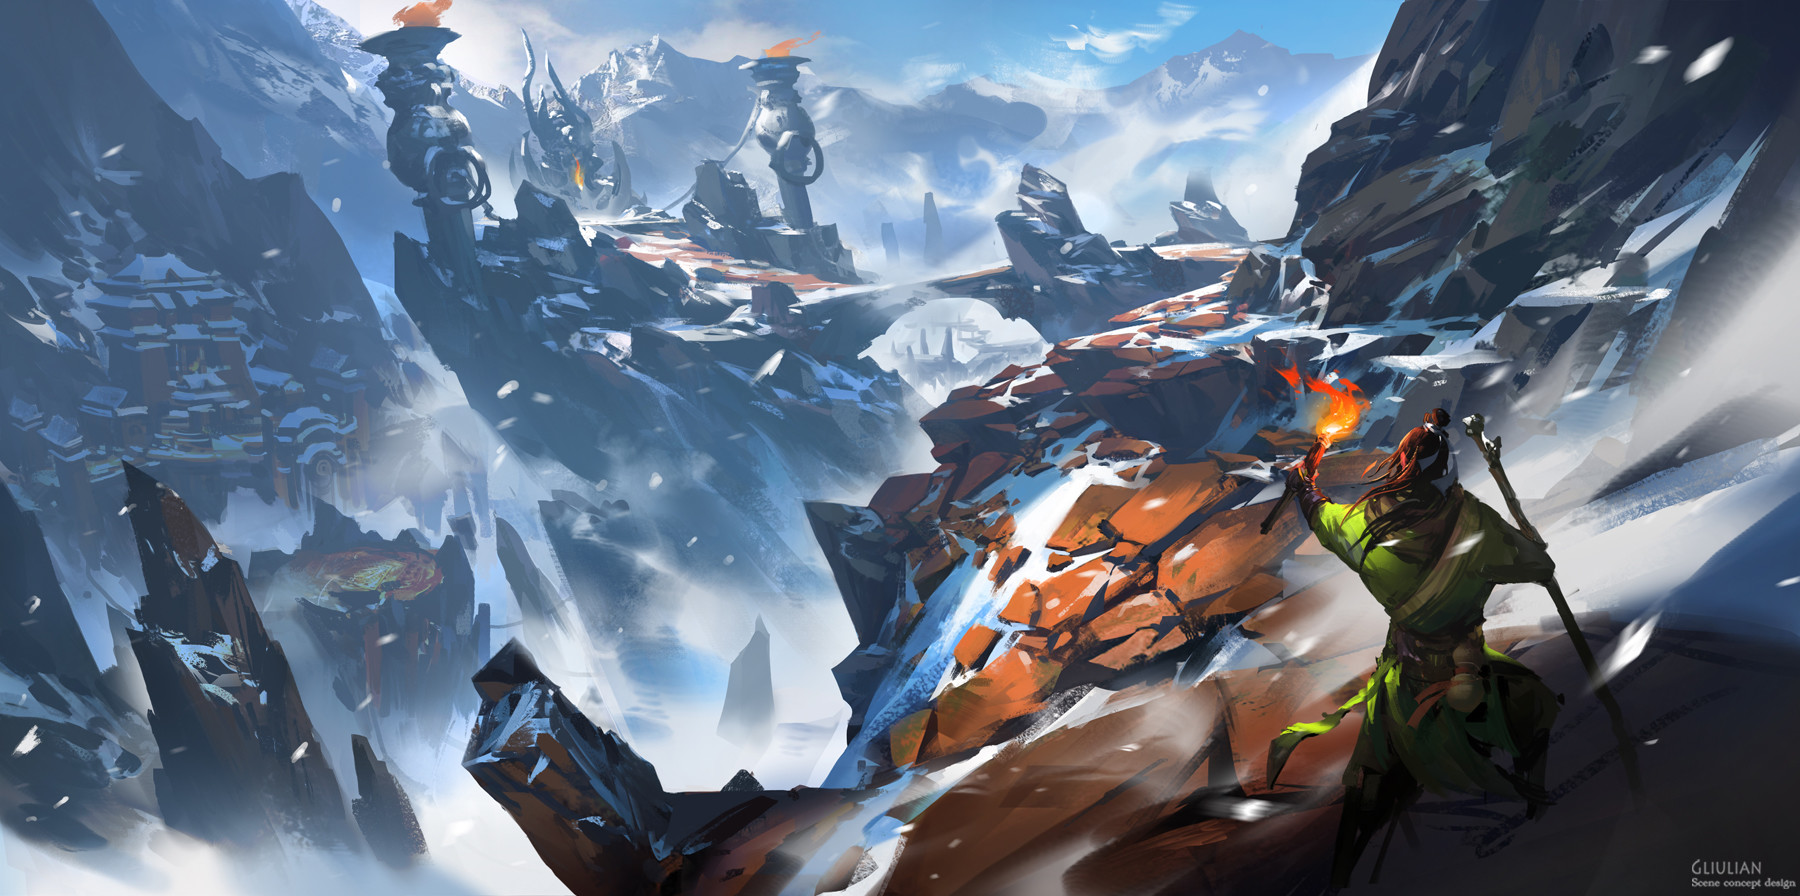 G Liulian digital painting concept art mage in snow mountain